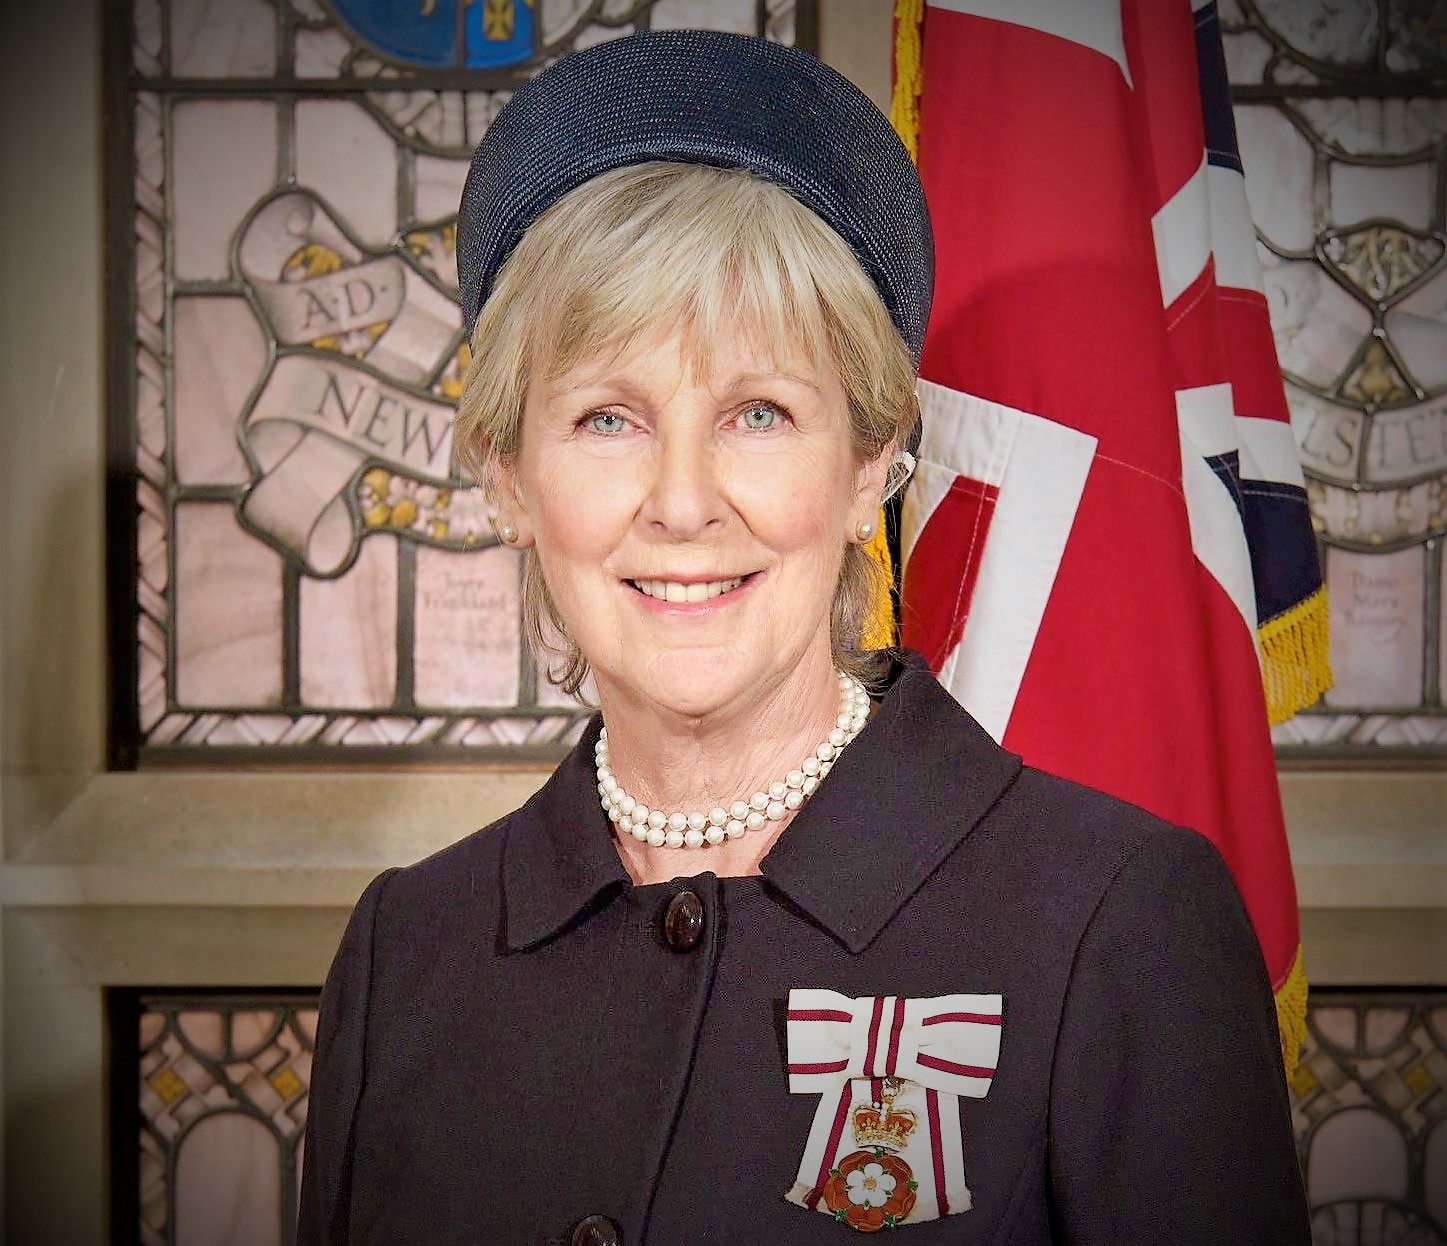 A head and shoulders shot of Lord Lieutenant of Essex Jennifer Tolhurst. She wears a dark jacket with the Lord Lieutenant medal on her left breast. She wears a necklaces of two short strings of pearls, pearl stud earrings and a dark pillbox hat. Behind her is a Union Jack unfurled and stained glass windows.